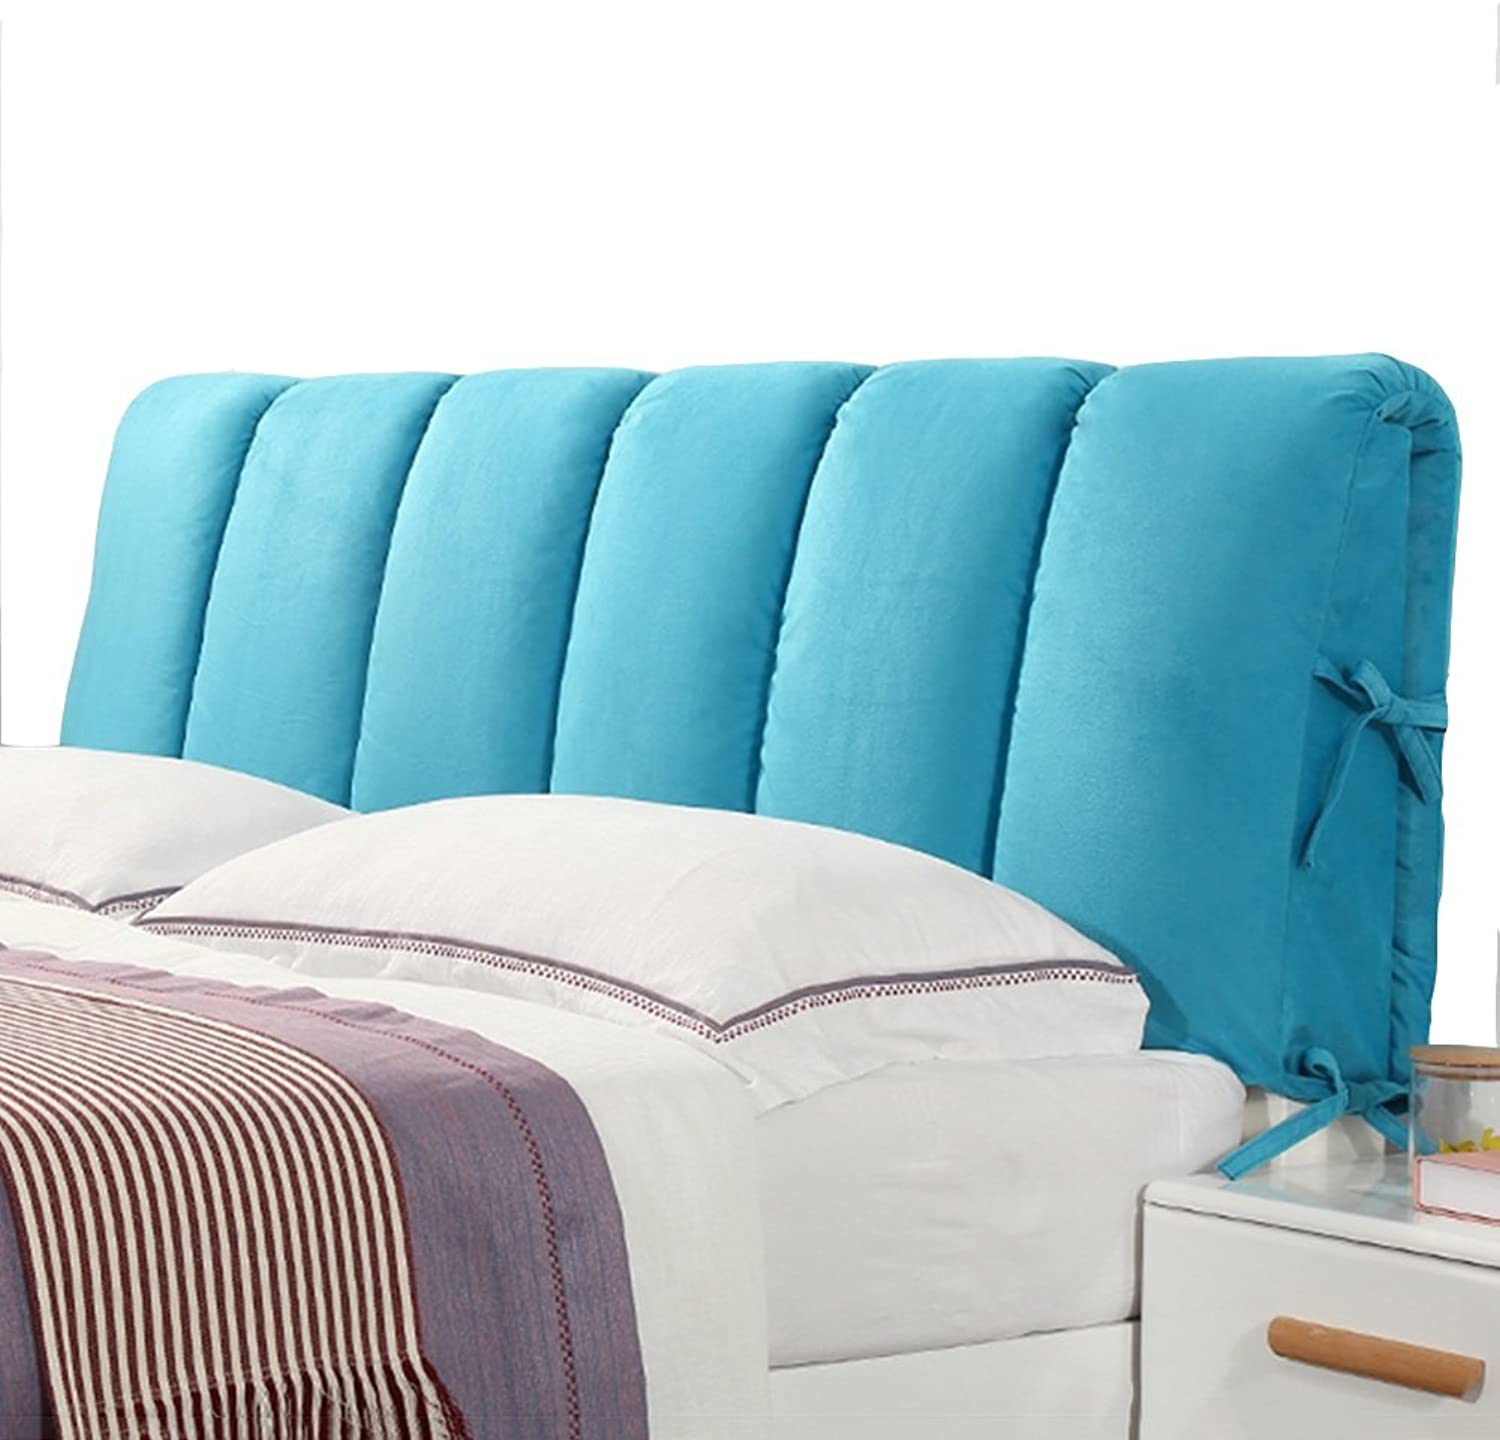 WENZHE Upholstered Fabric Headboard Bedside Cushion Pads Cover Bed Wedges Backrest Waist Pad Cloth Washable Soft Case Bed Cover Multifunction, Have A Headboard, 4 colors, 10 Sizes